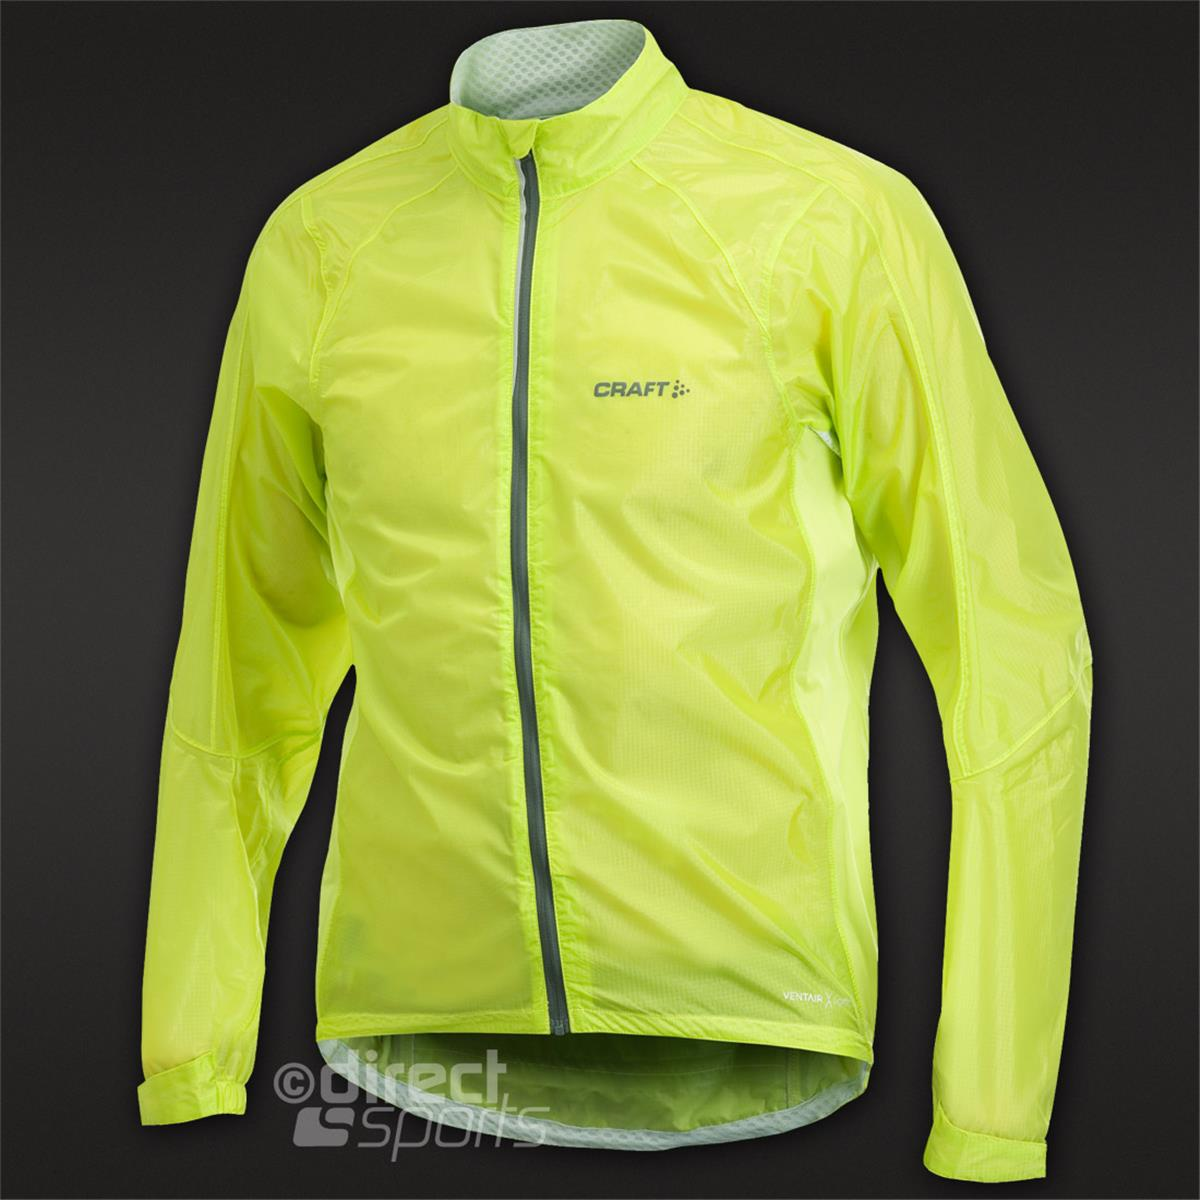 Craft Performance Bike Rain Jacket (Amino) by directsportseshop